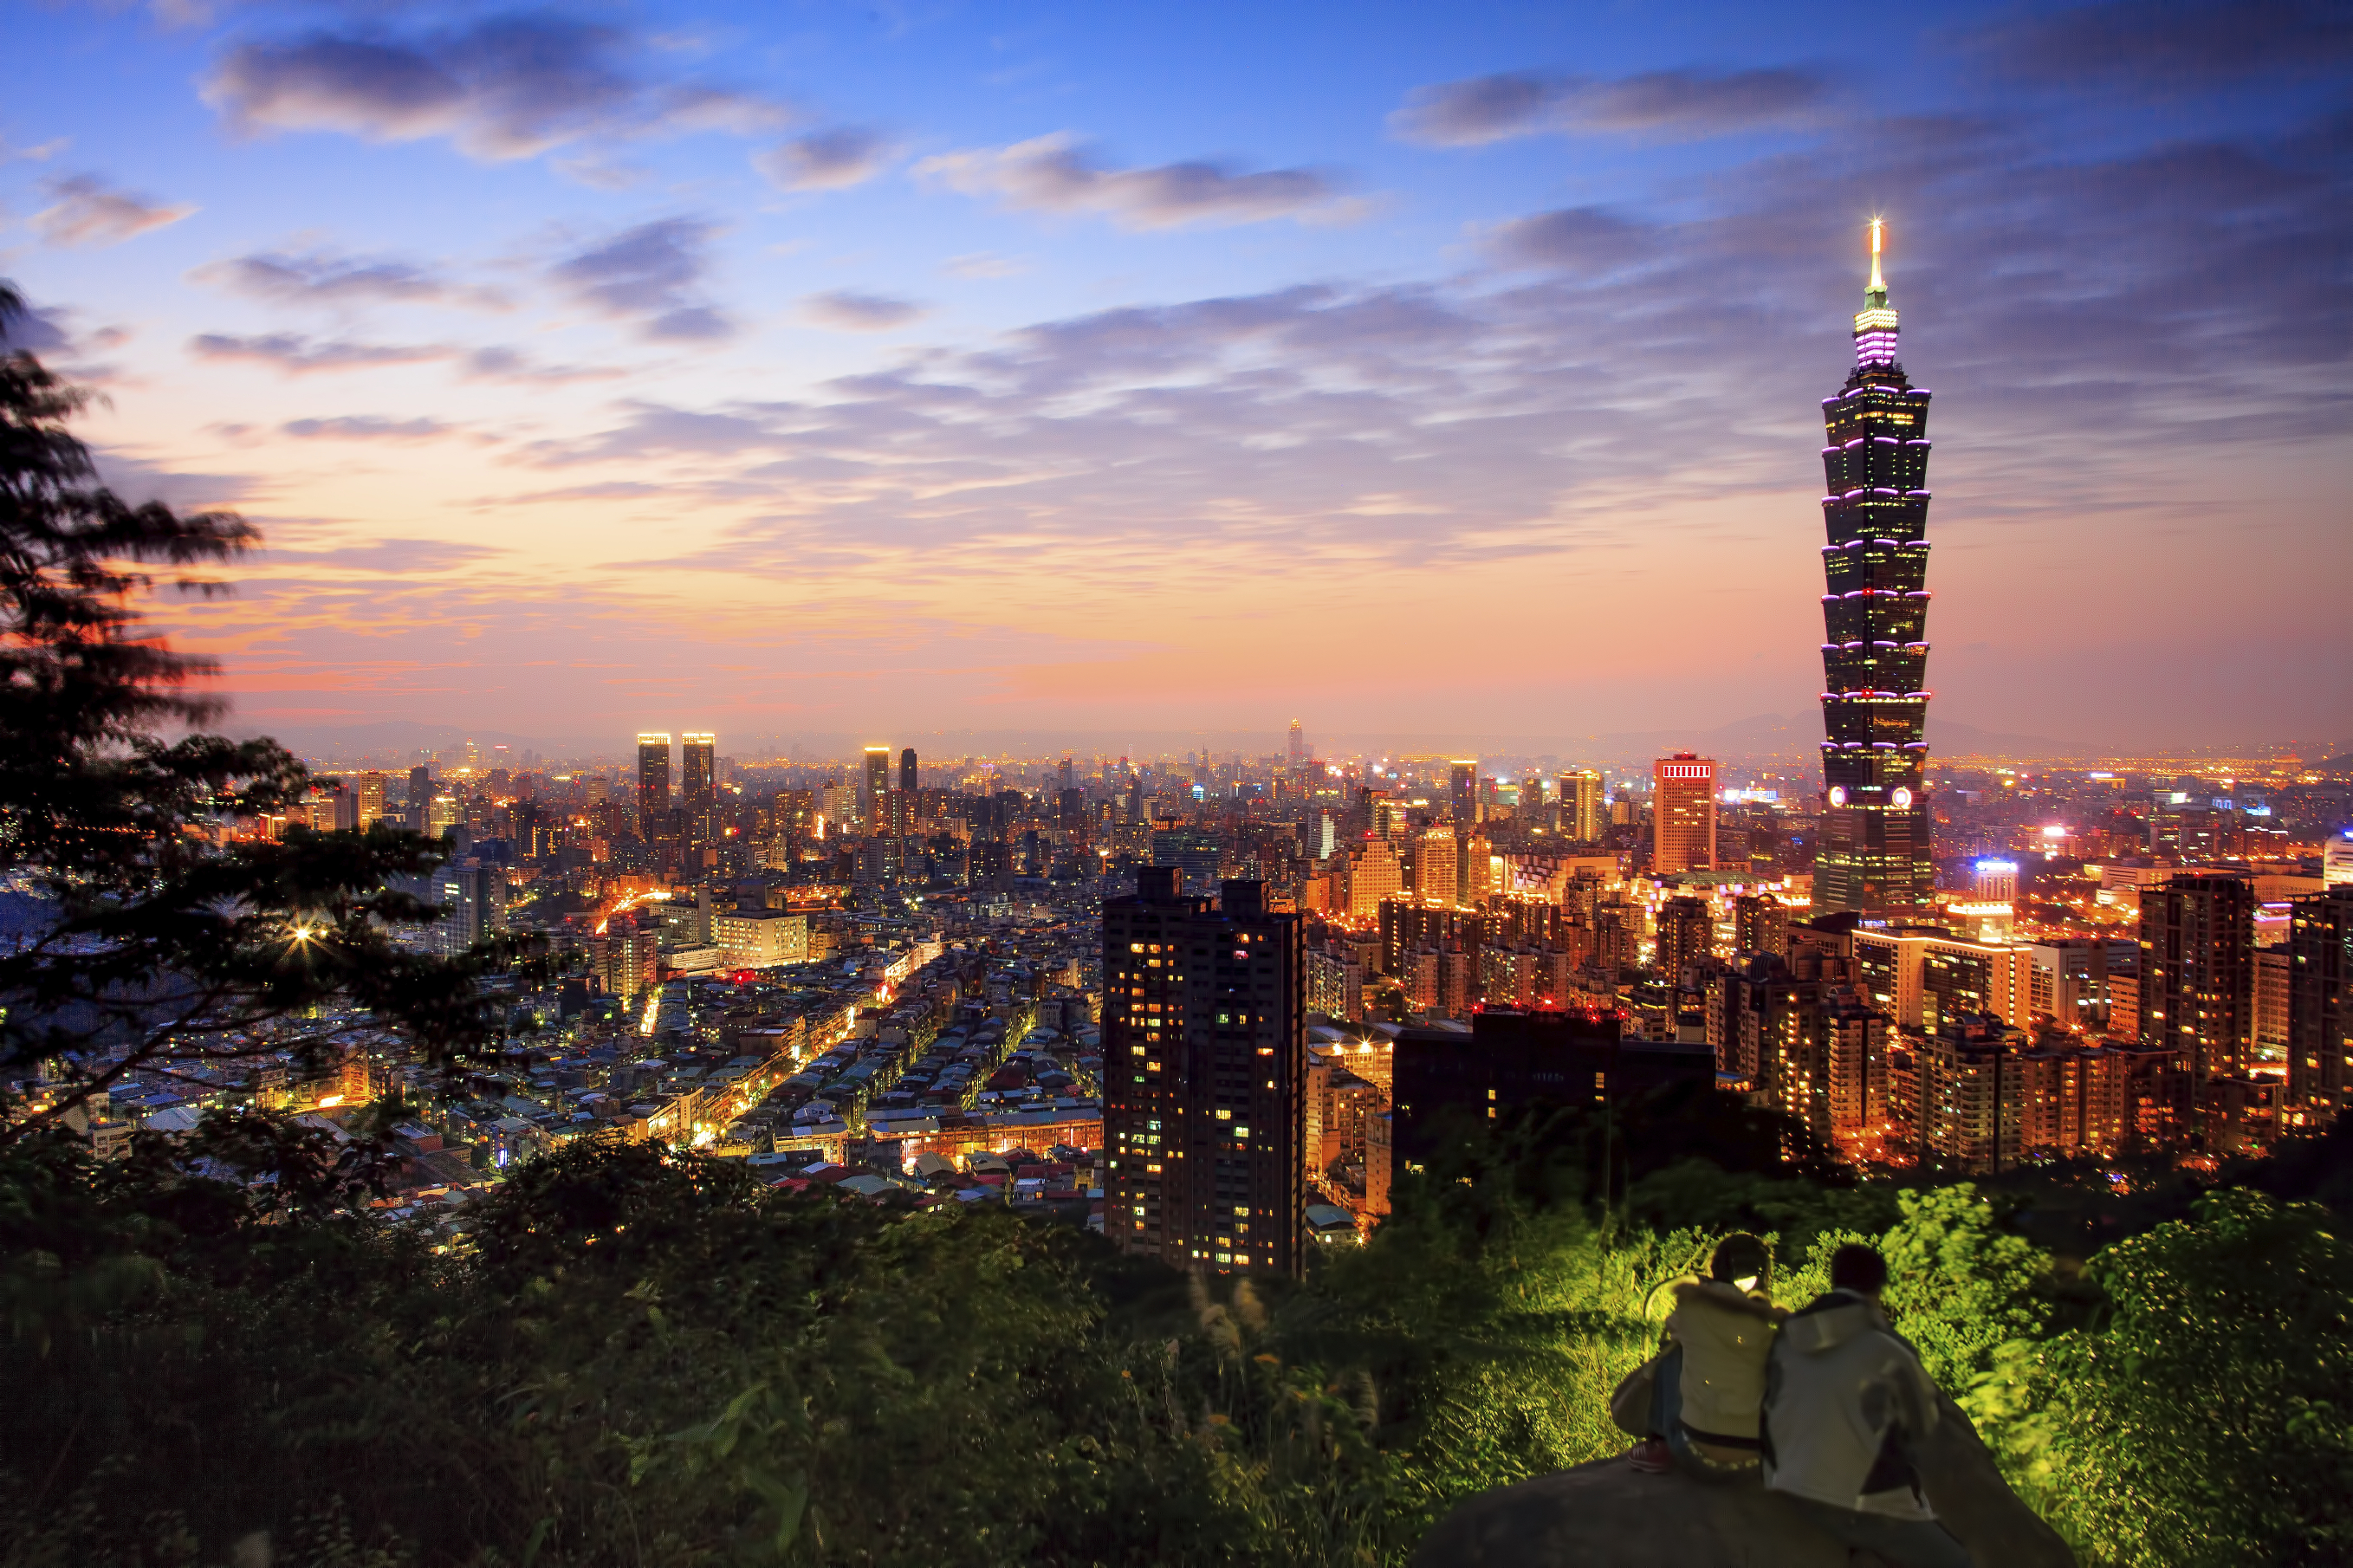 Taipei, capital of Taiwan at dusk.